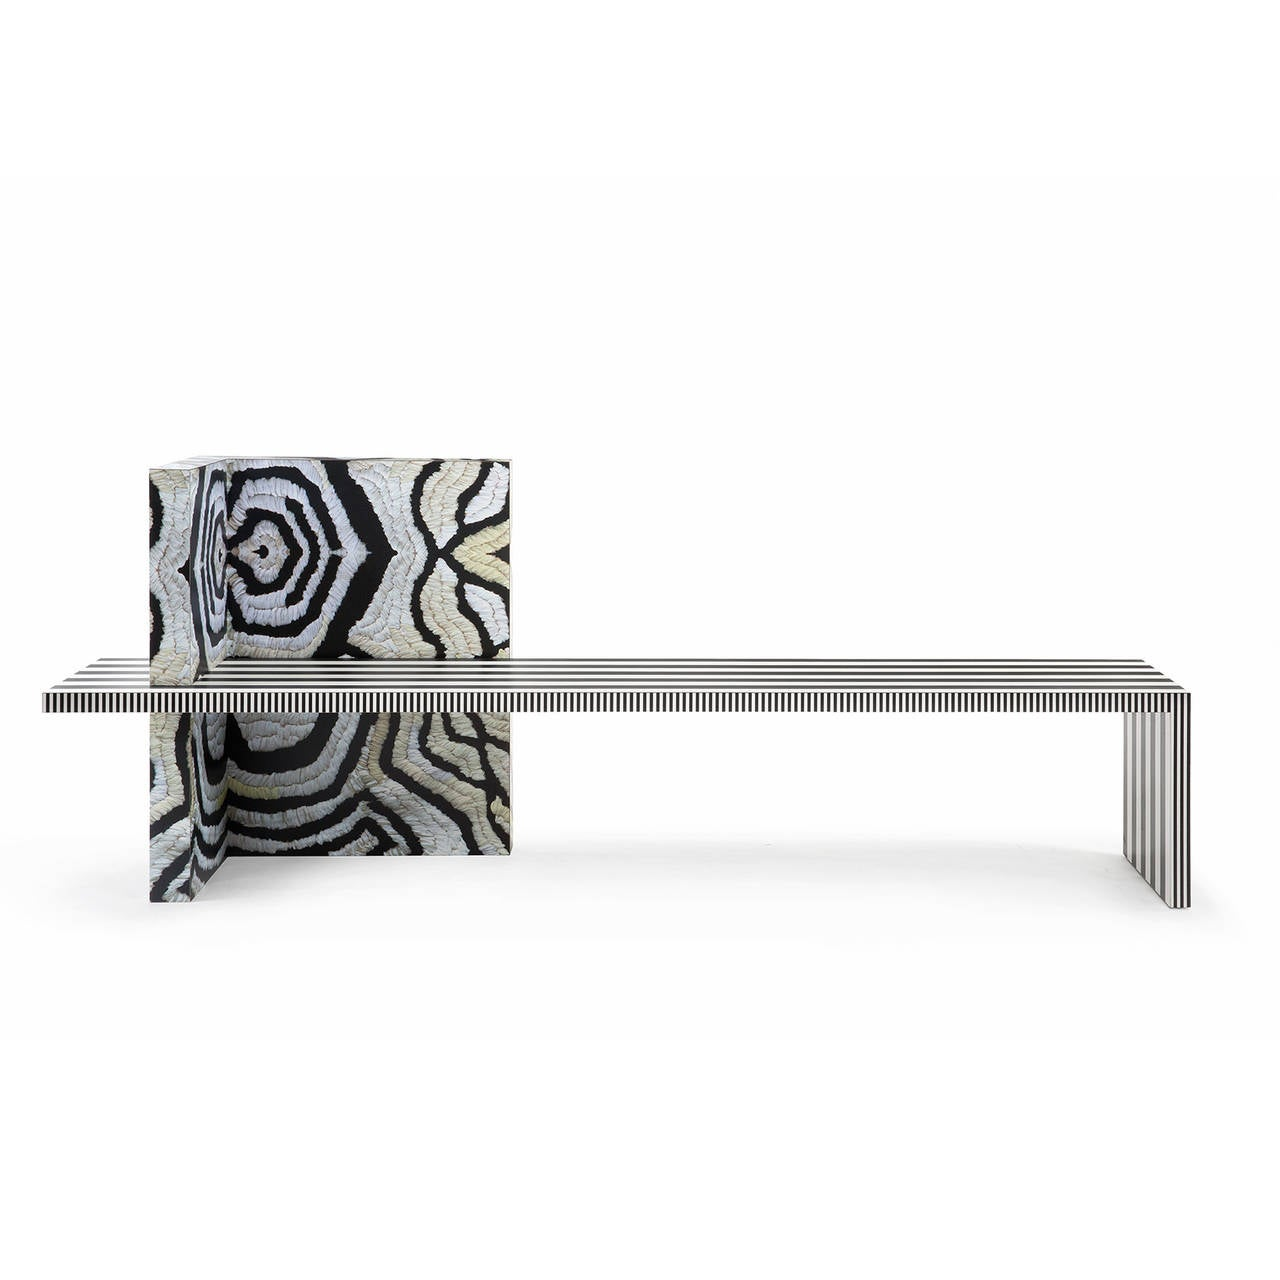 Unique sculptural bench inspired by the Memphis Group design movement with original laminate prints by Kelly Behun Studio.